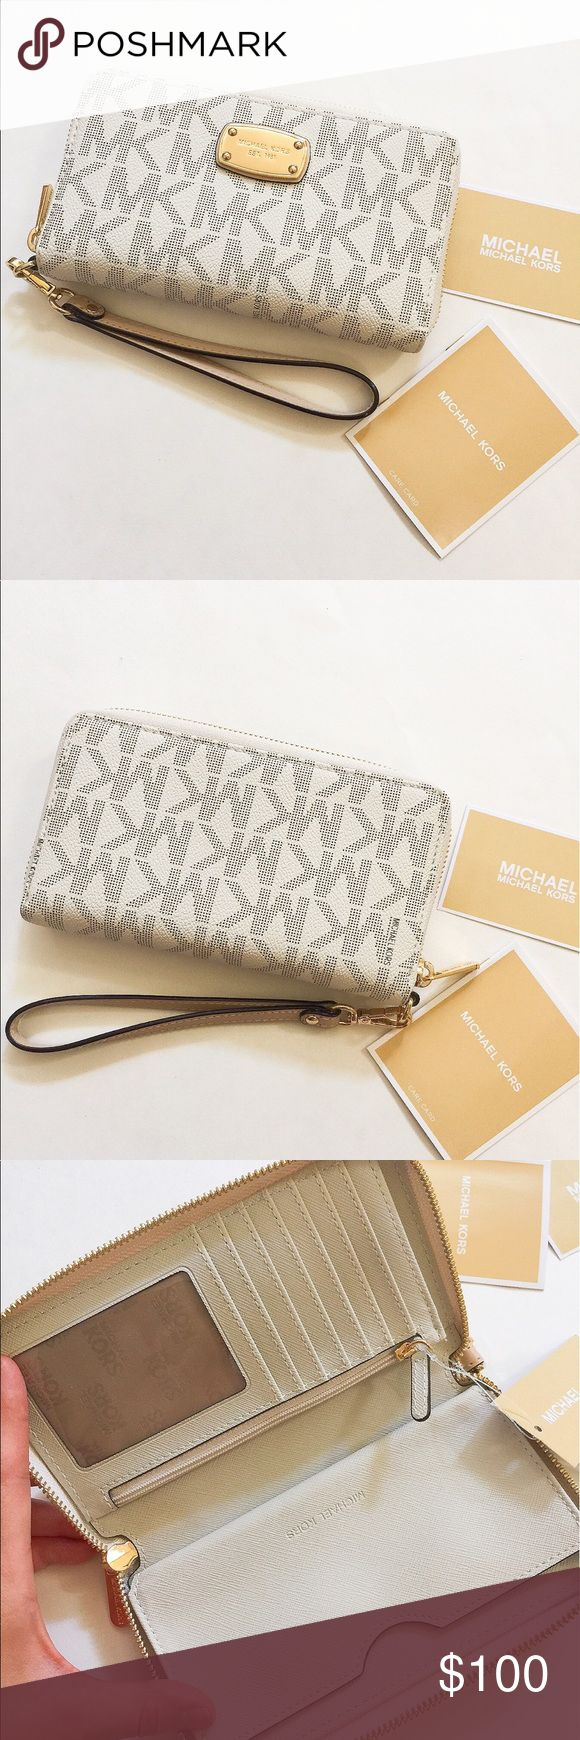 NWT Michael Kors jet set leather wallet/wristlets Brand new with tag. Never used. Can fit in iPhone 6 Plus without a phone case. ❌no trade ❌no lowballing offers!!! Michael Kors Bags